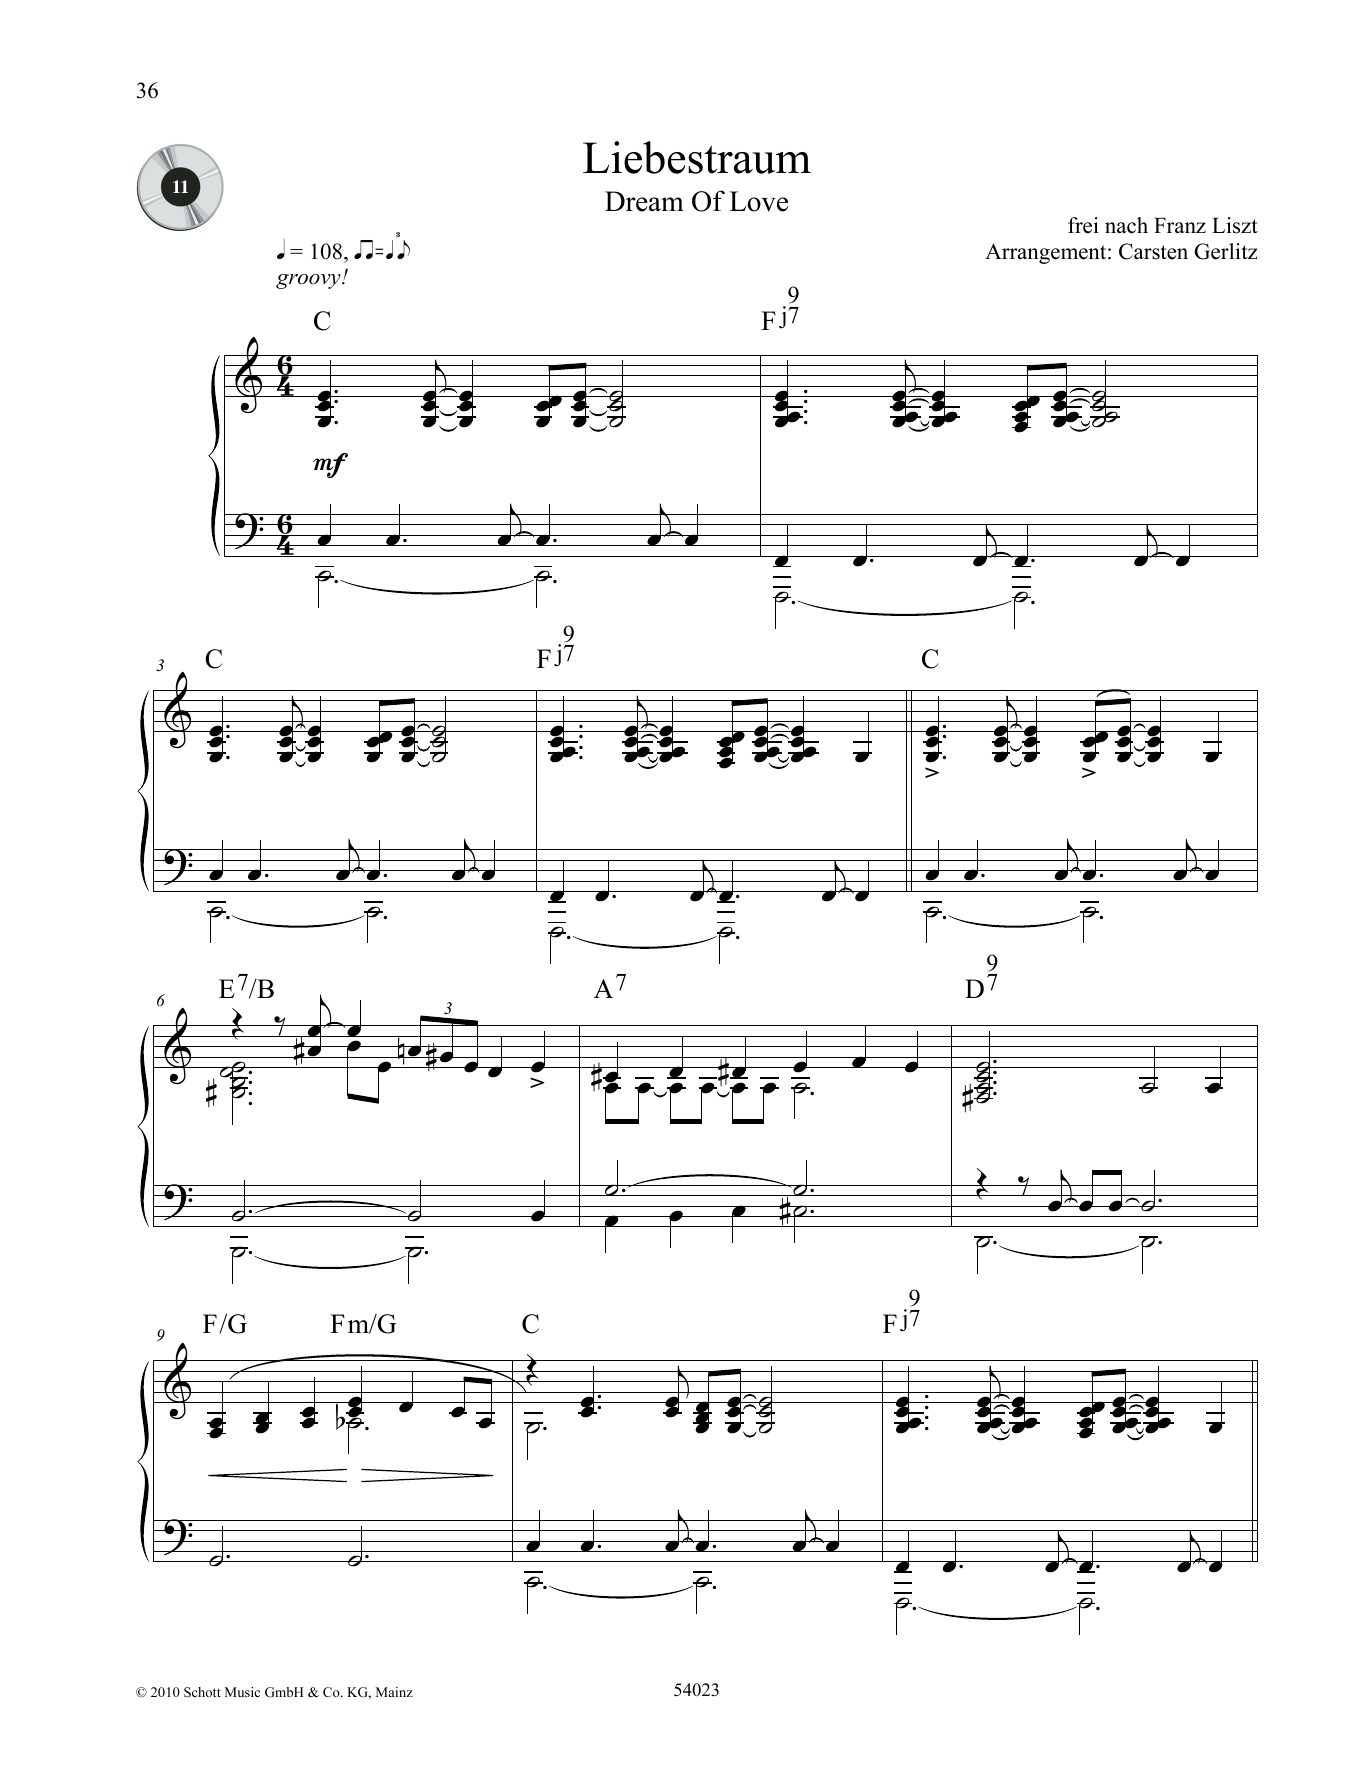 Dream of Love Sheet Music